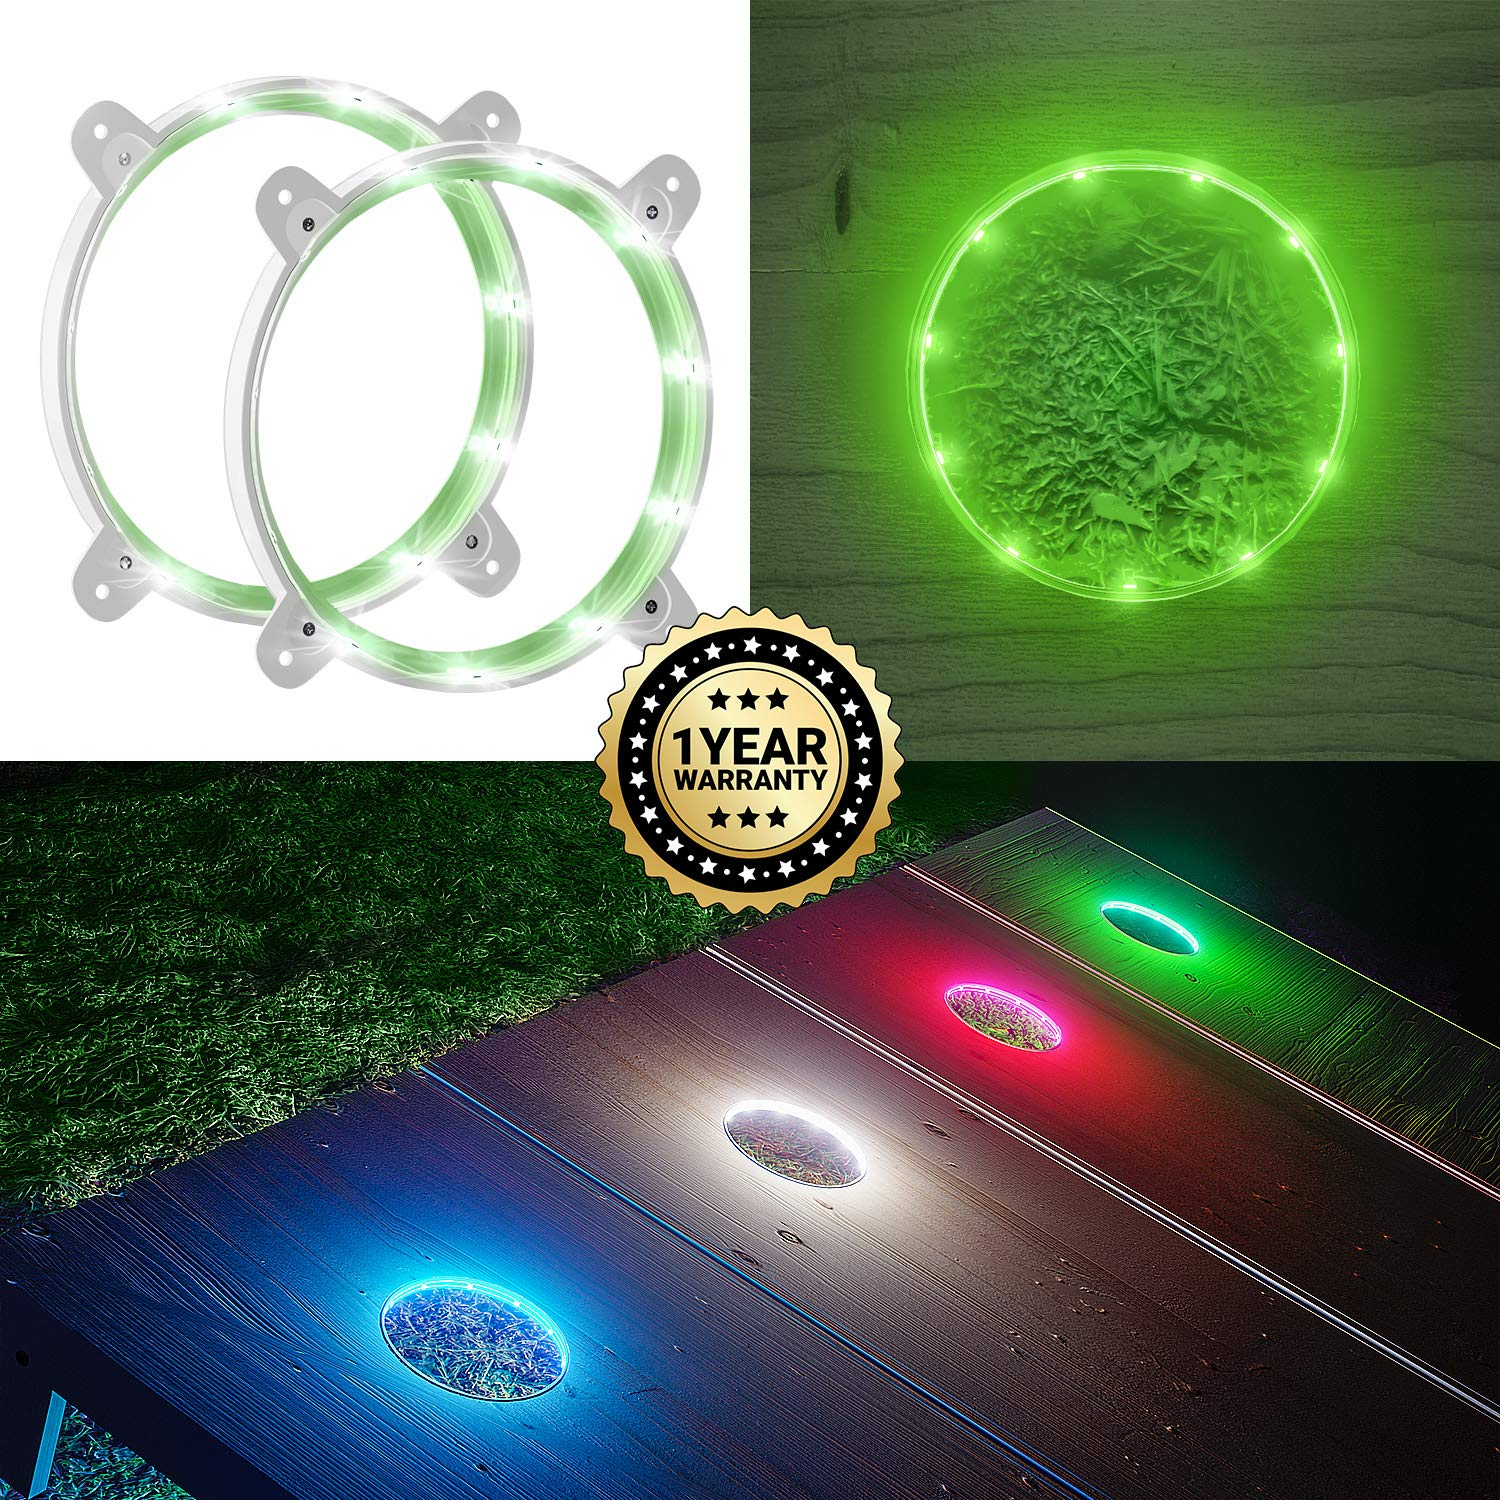 IMMOBIUS Cornhole LED Board Lights so You Can Play at Night! (Set of 2) -Choose from White or Blue- 1 Year Replacement Warranty, Sturdy Build, Lasts 60+ Hours on 2 AA Batteries! (Green)